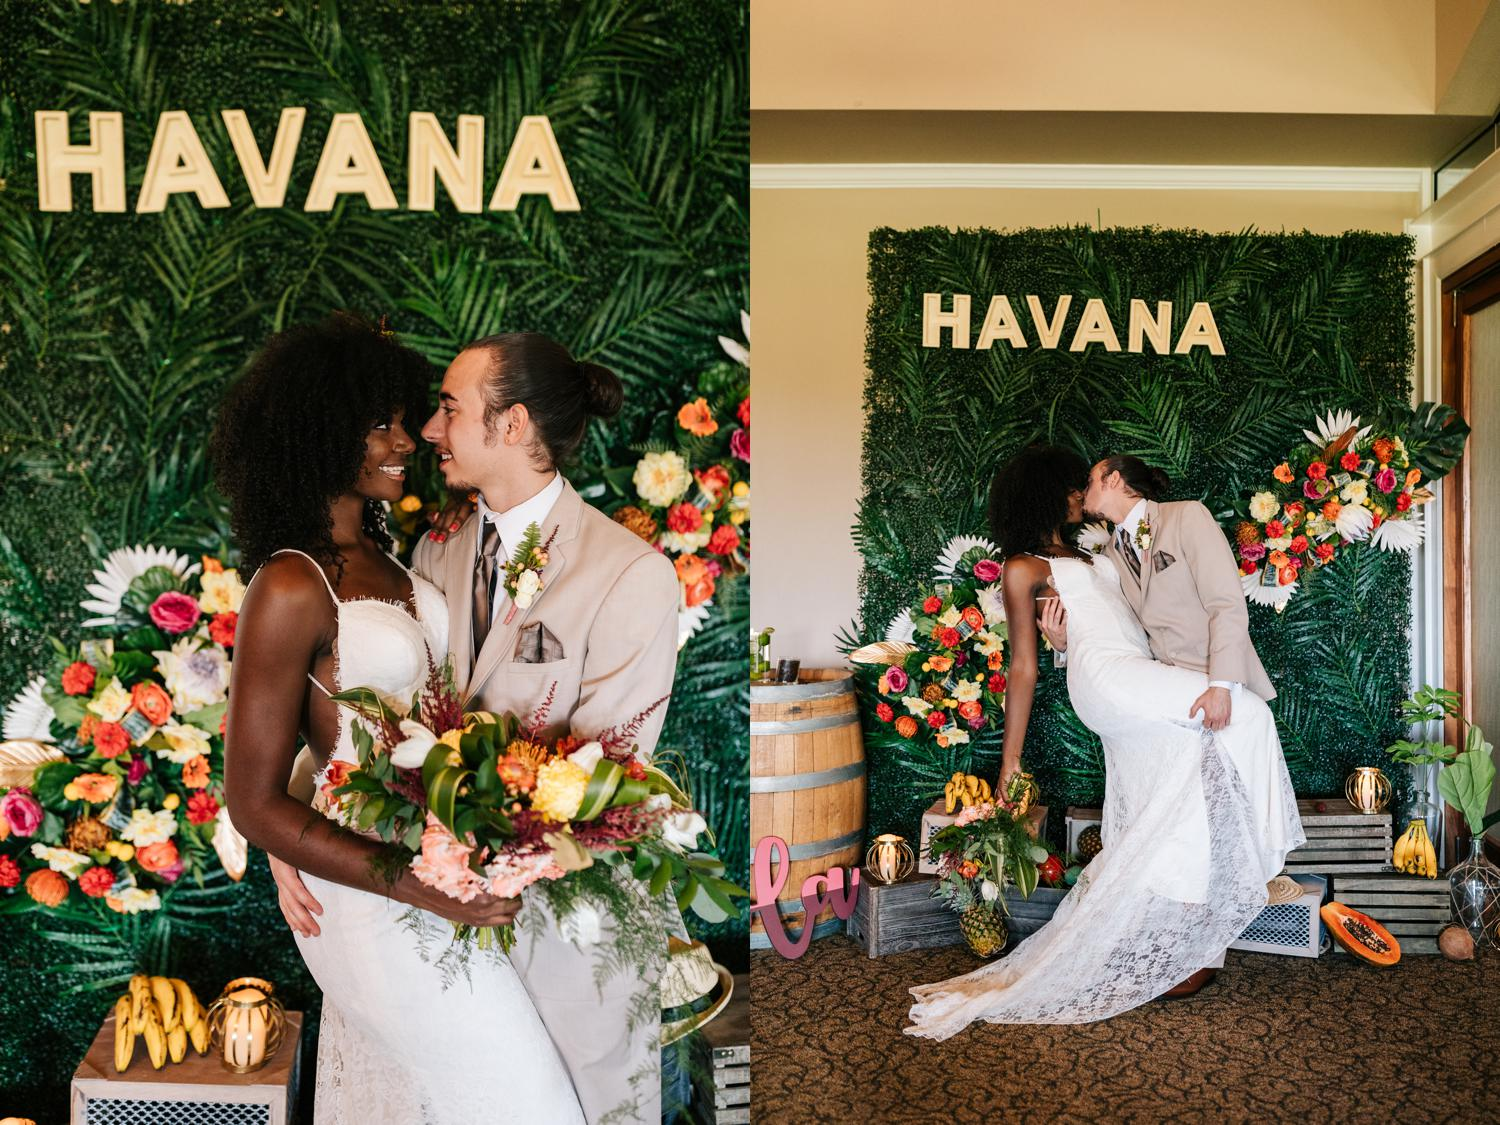 Havana themed photo booth for wedding reception in New Mexico